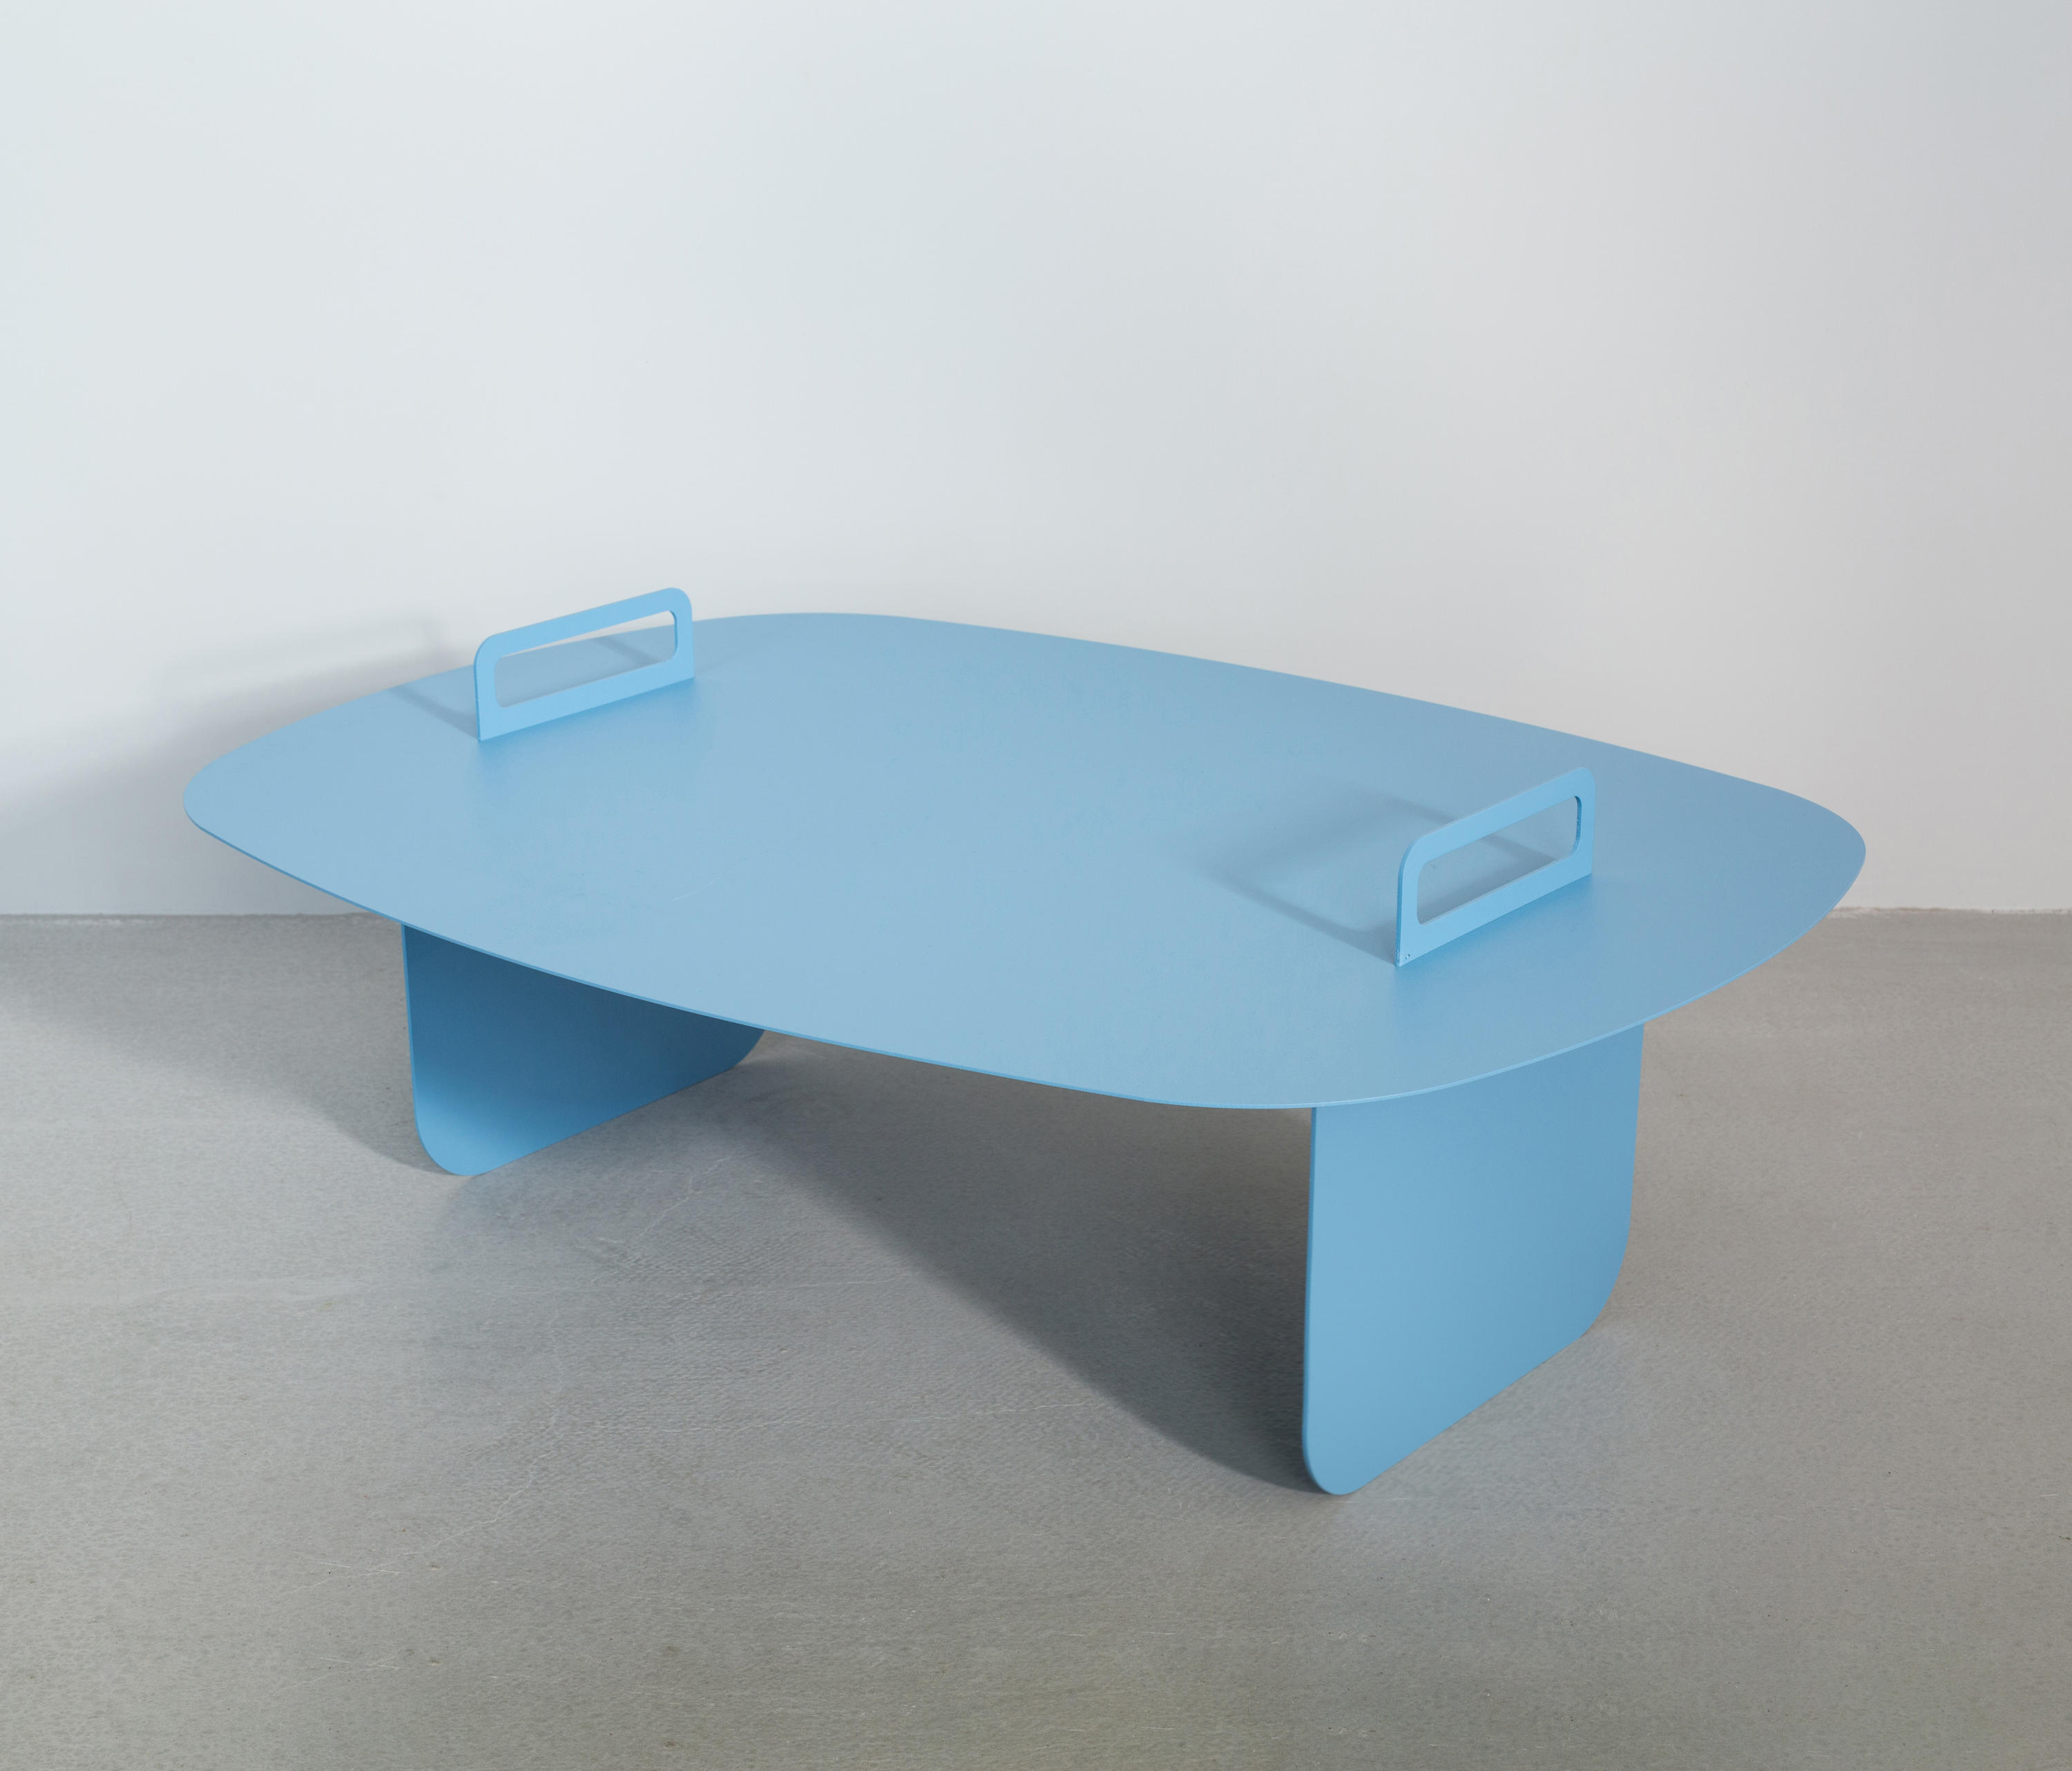 Fine Cloud Table Big Coffee Tables From Fild Architonic Onthecornerstone Fun Painted Chair Ideas Images Onthecornerstoneorg